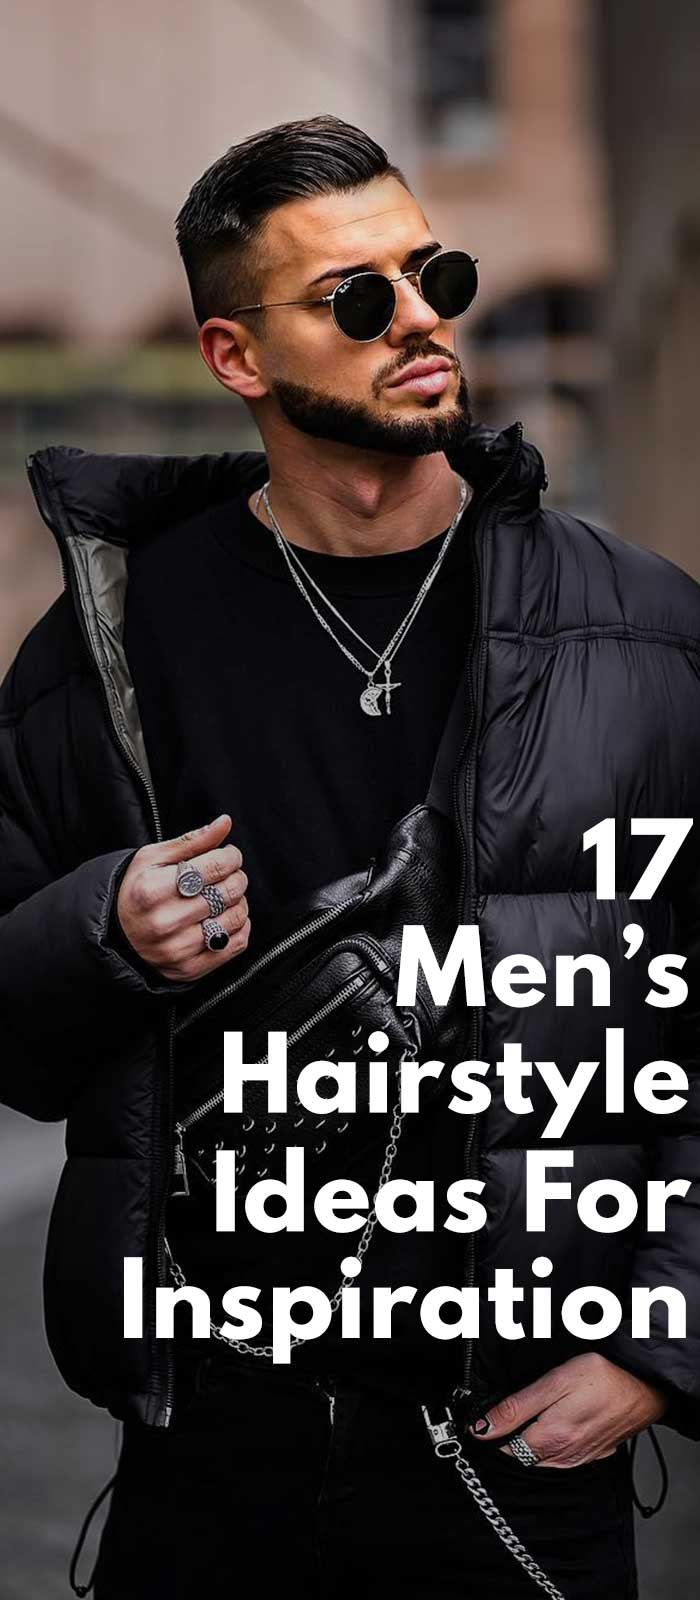 17 Men's Hairstyle Ideas For Inspiration!